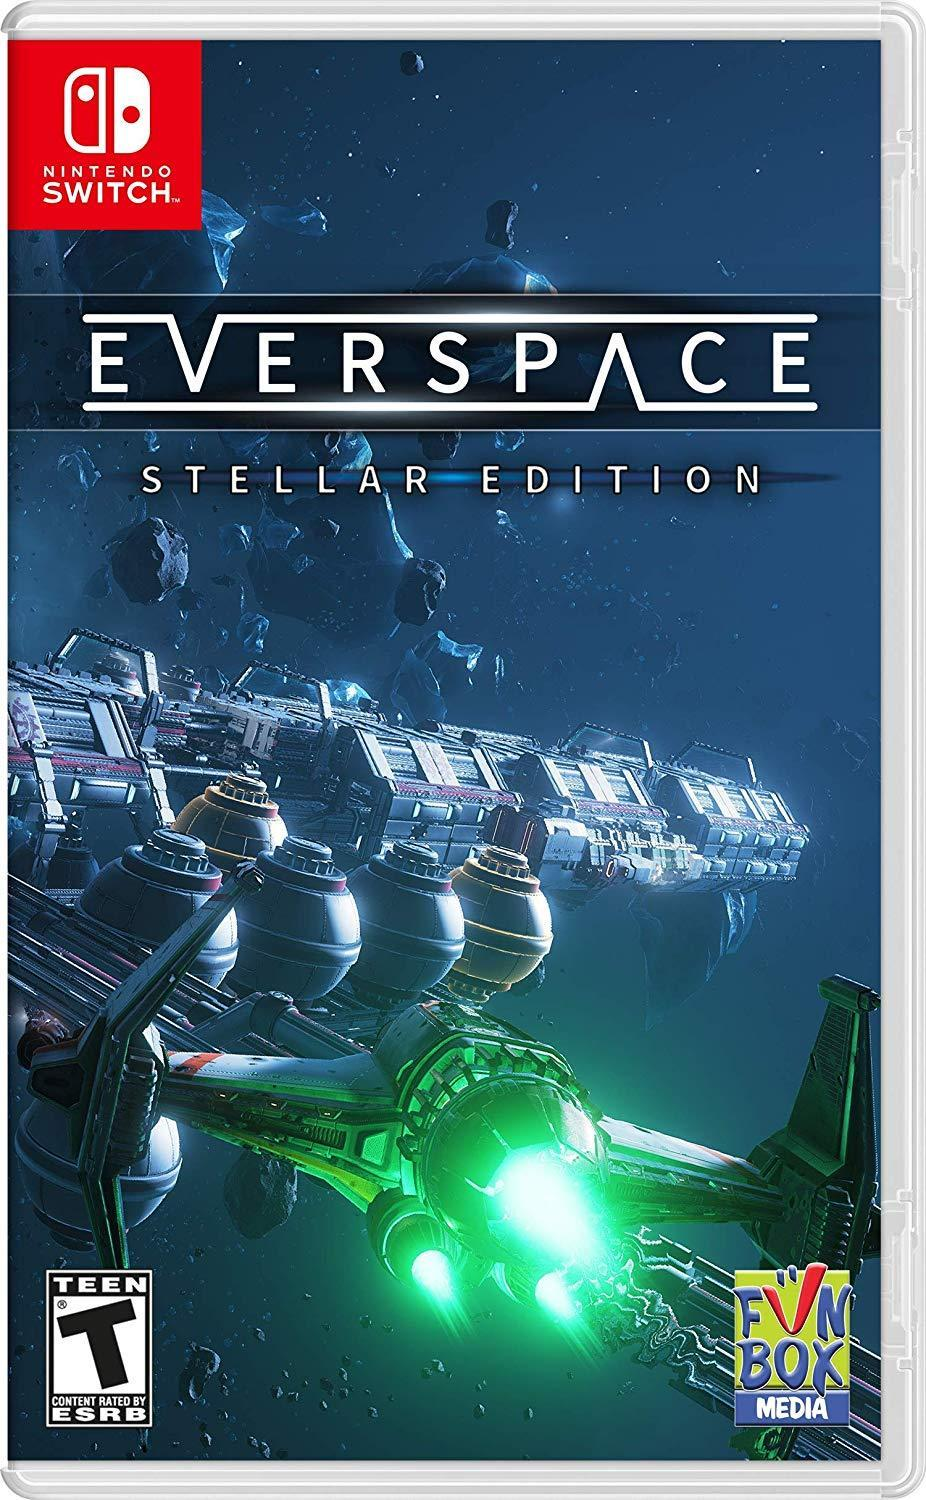 Everspace Stellar Edition (Nintendo Switch, PS4 or Xbox One)